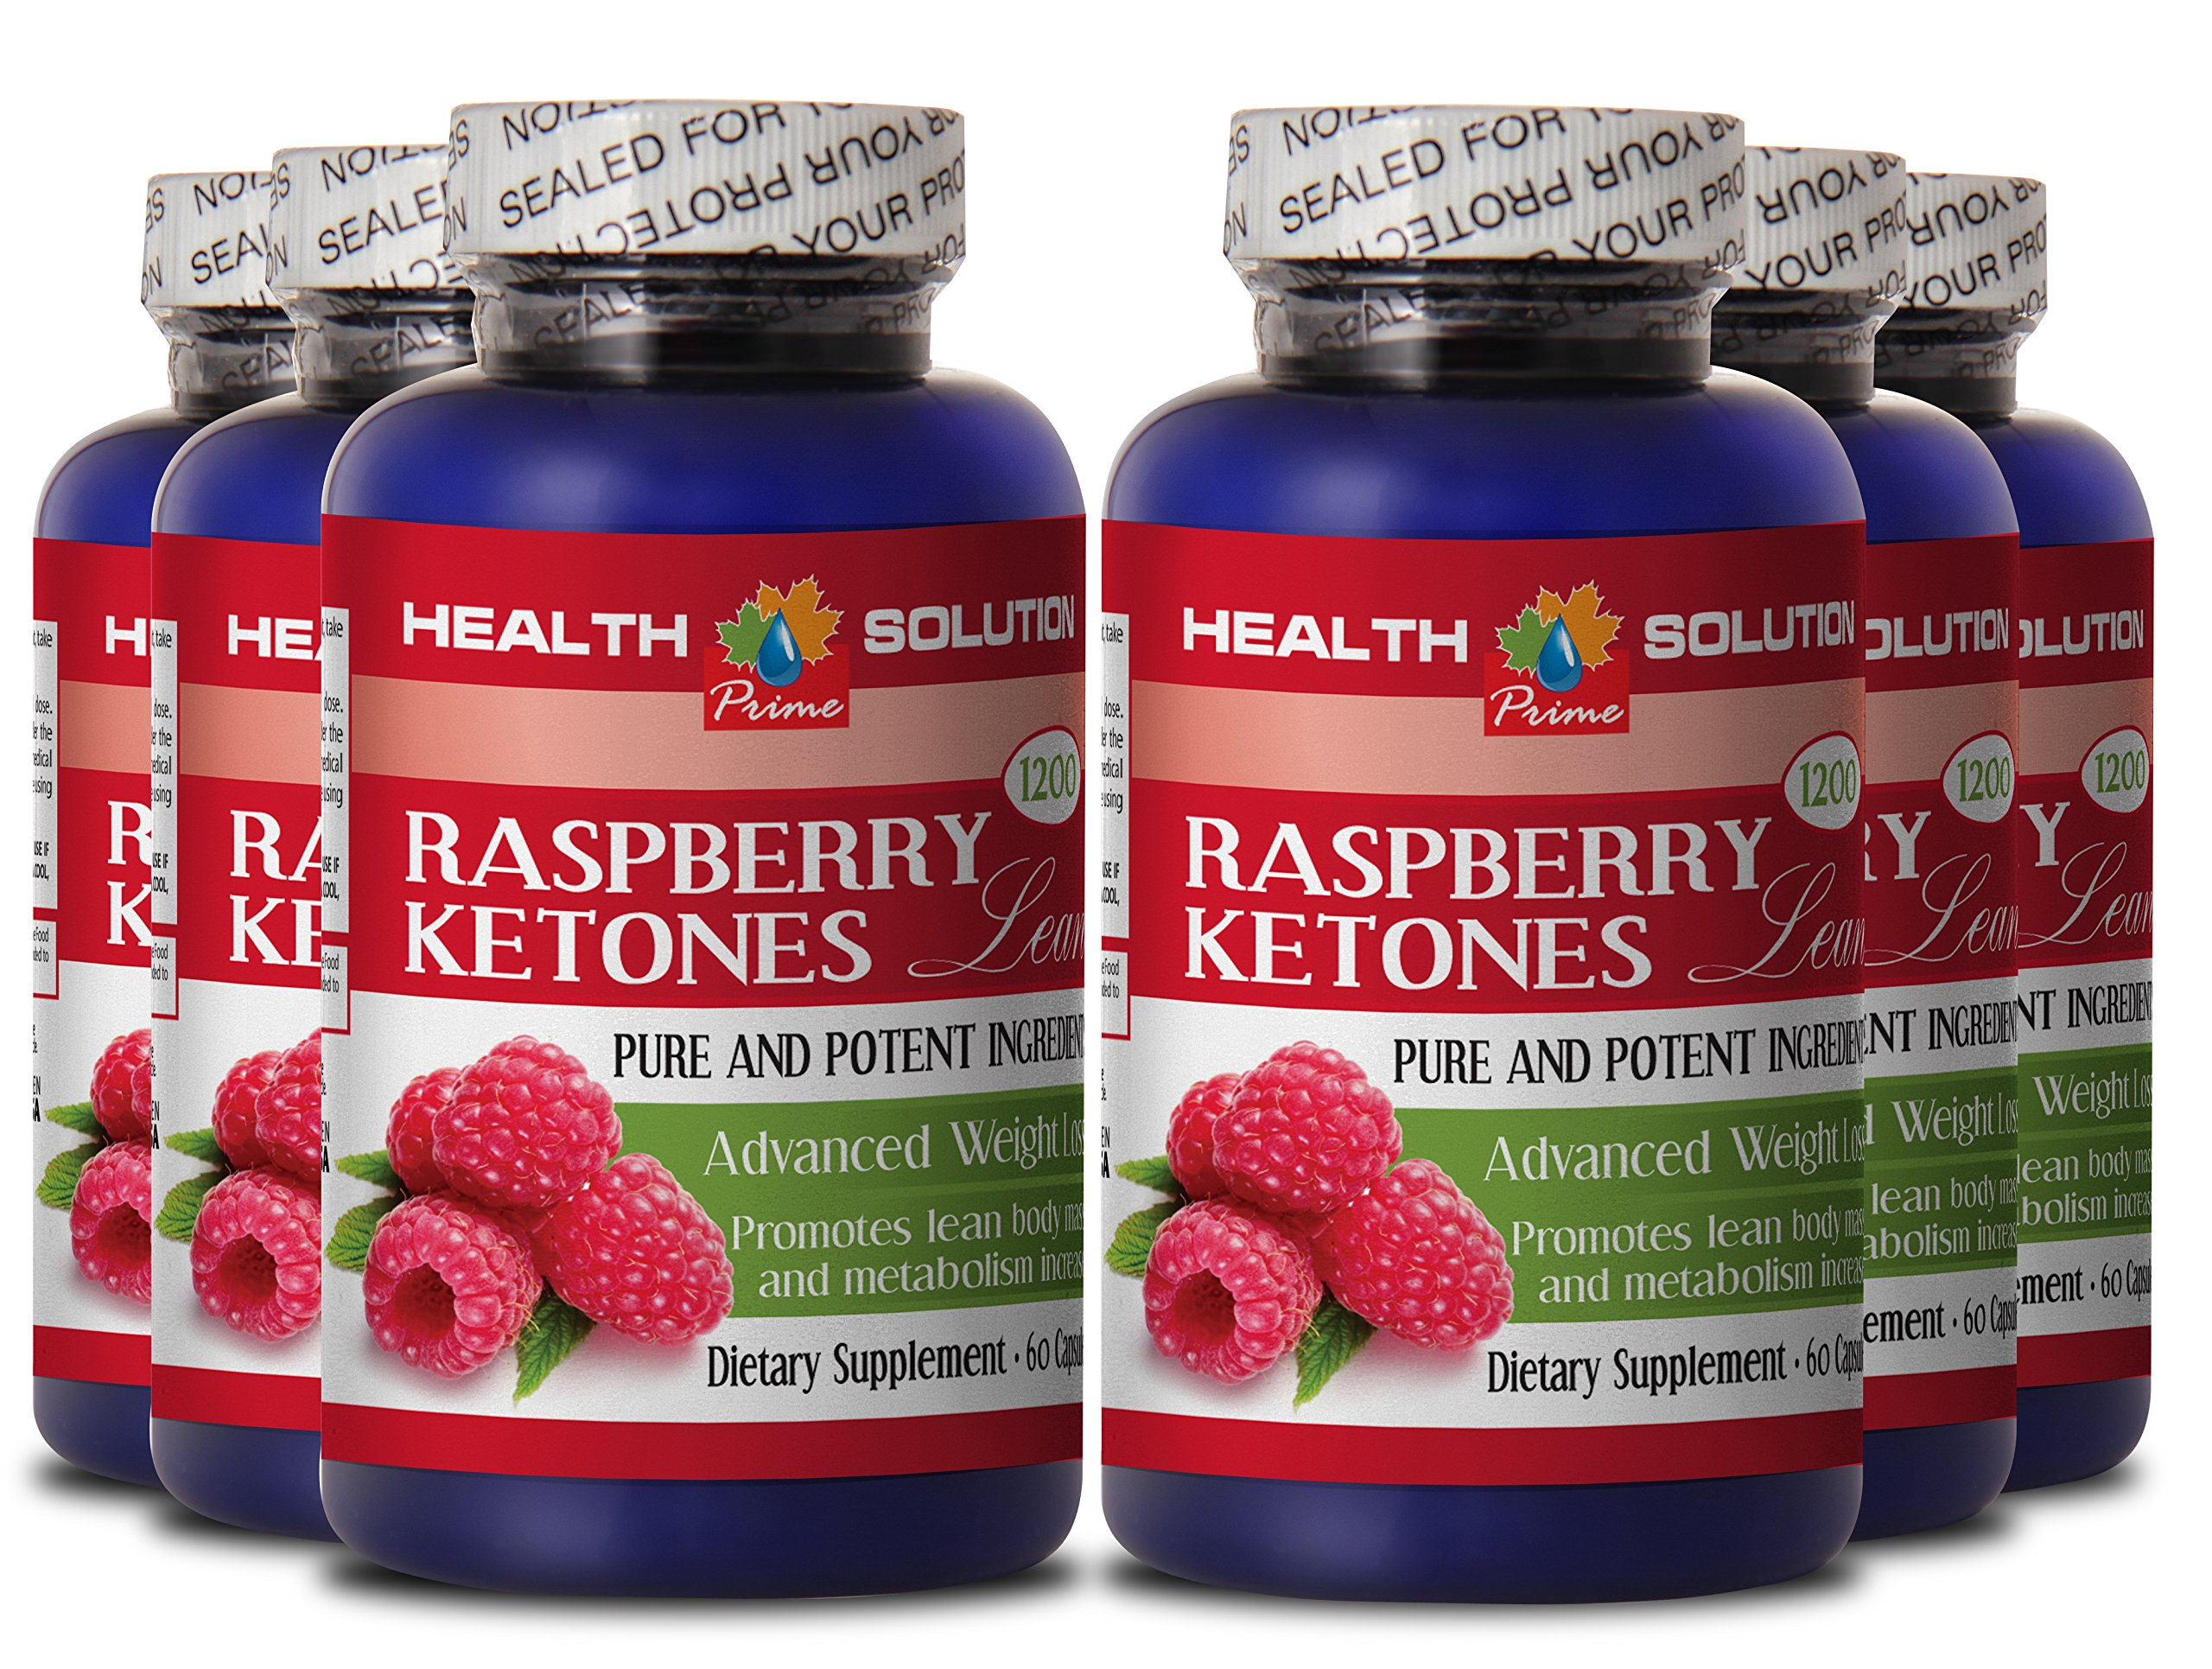 Raspberry ketones lose weight - RASPBERRY KETONES LEAN 1200MG - support digestion (6 Bottles)